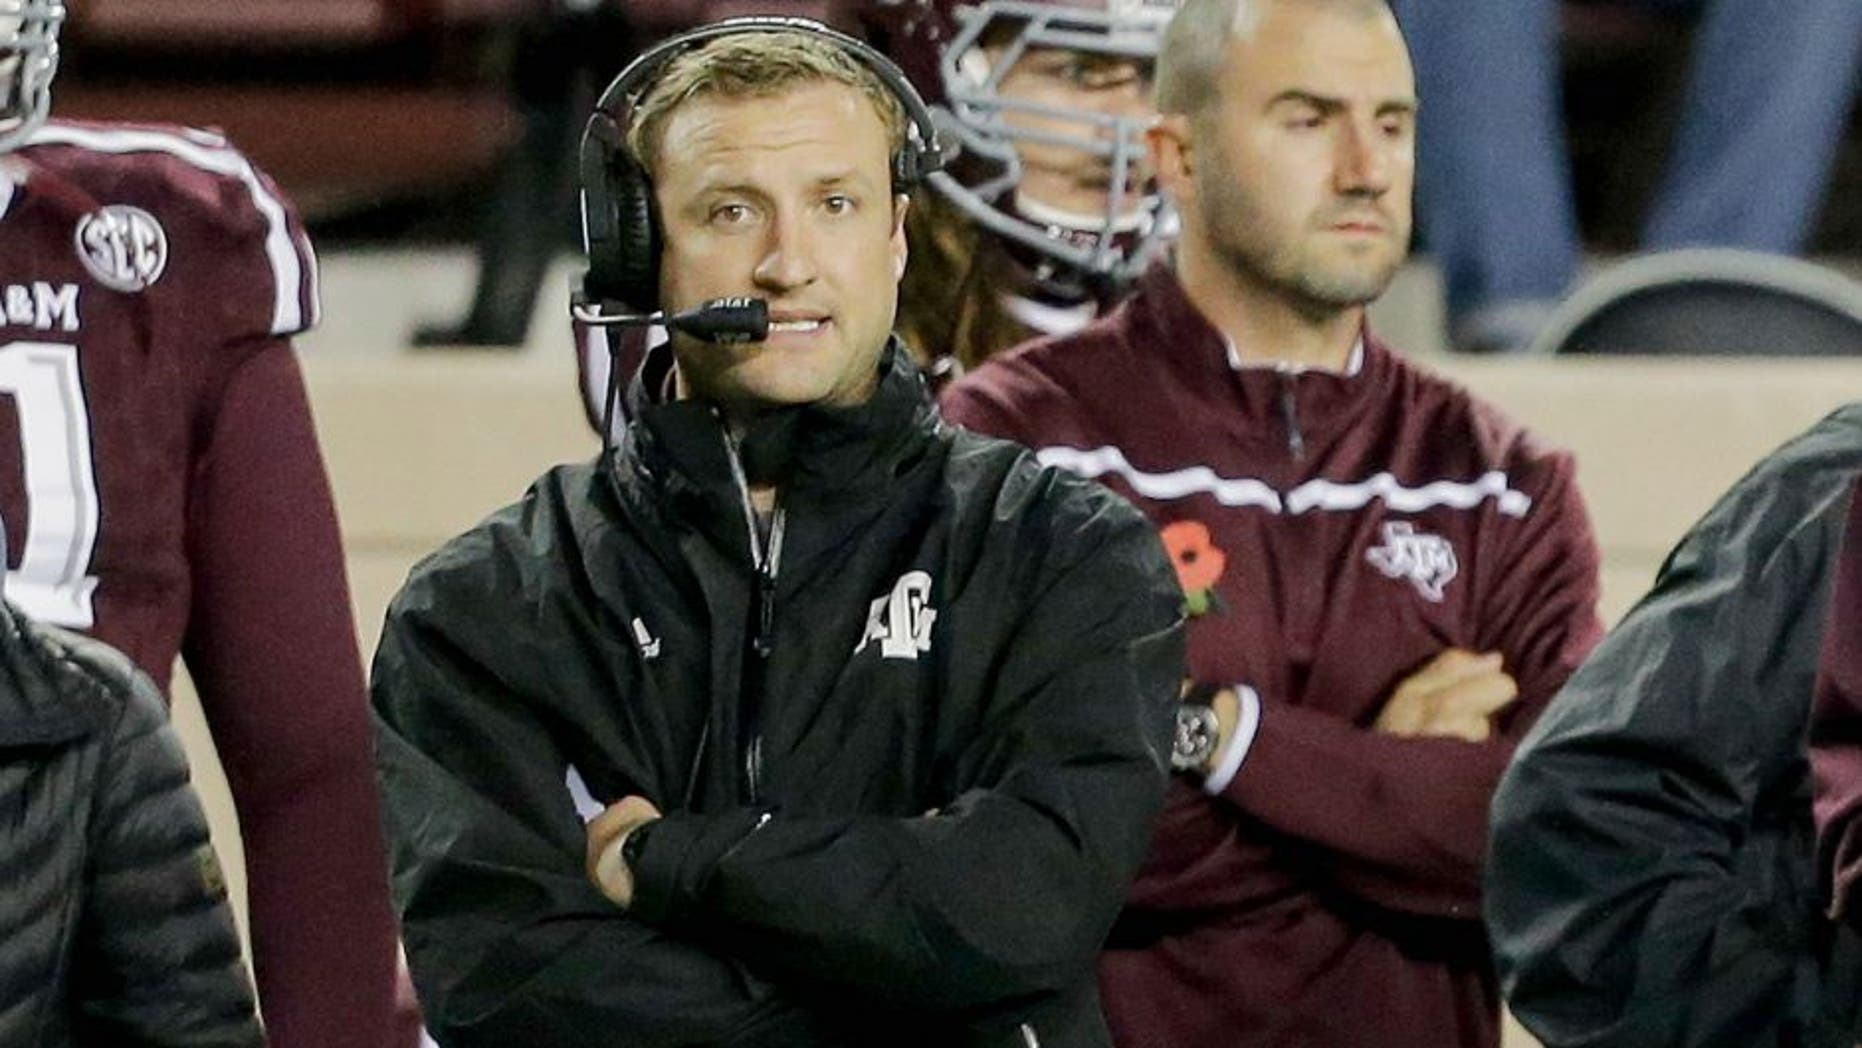 COLLEGE STATION, TX - NOVEMBER 07: Texas A&M Aggies offensive coordinator Jake Spavital at Kyle Field on November 7, 2015 in College Station, Texas. (Photo by Bob Levey/Getty Images)